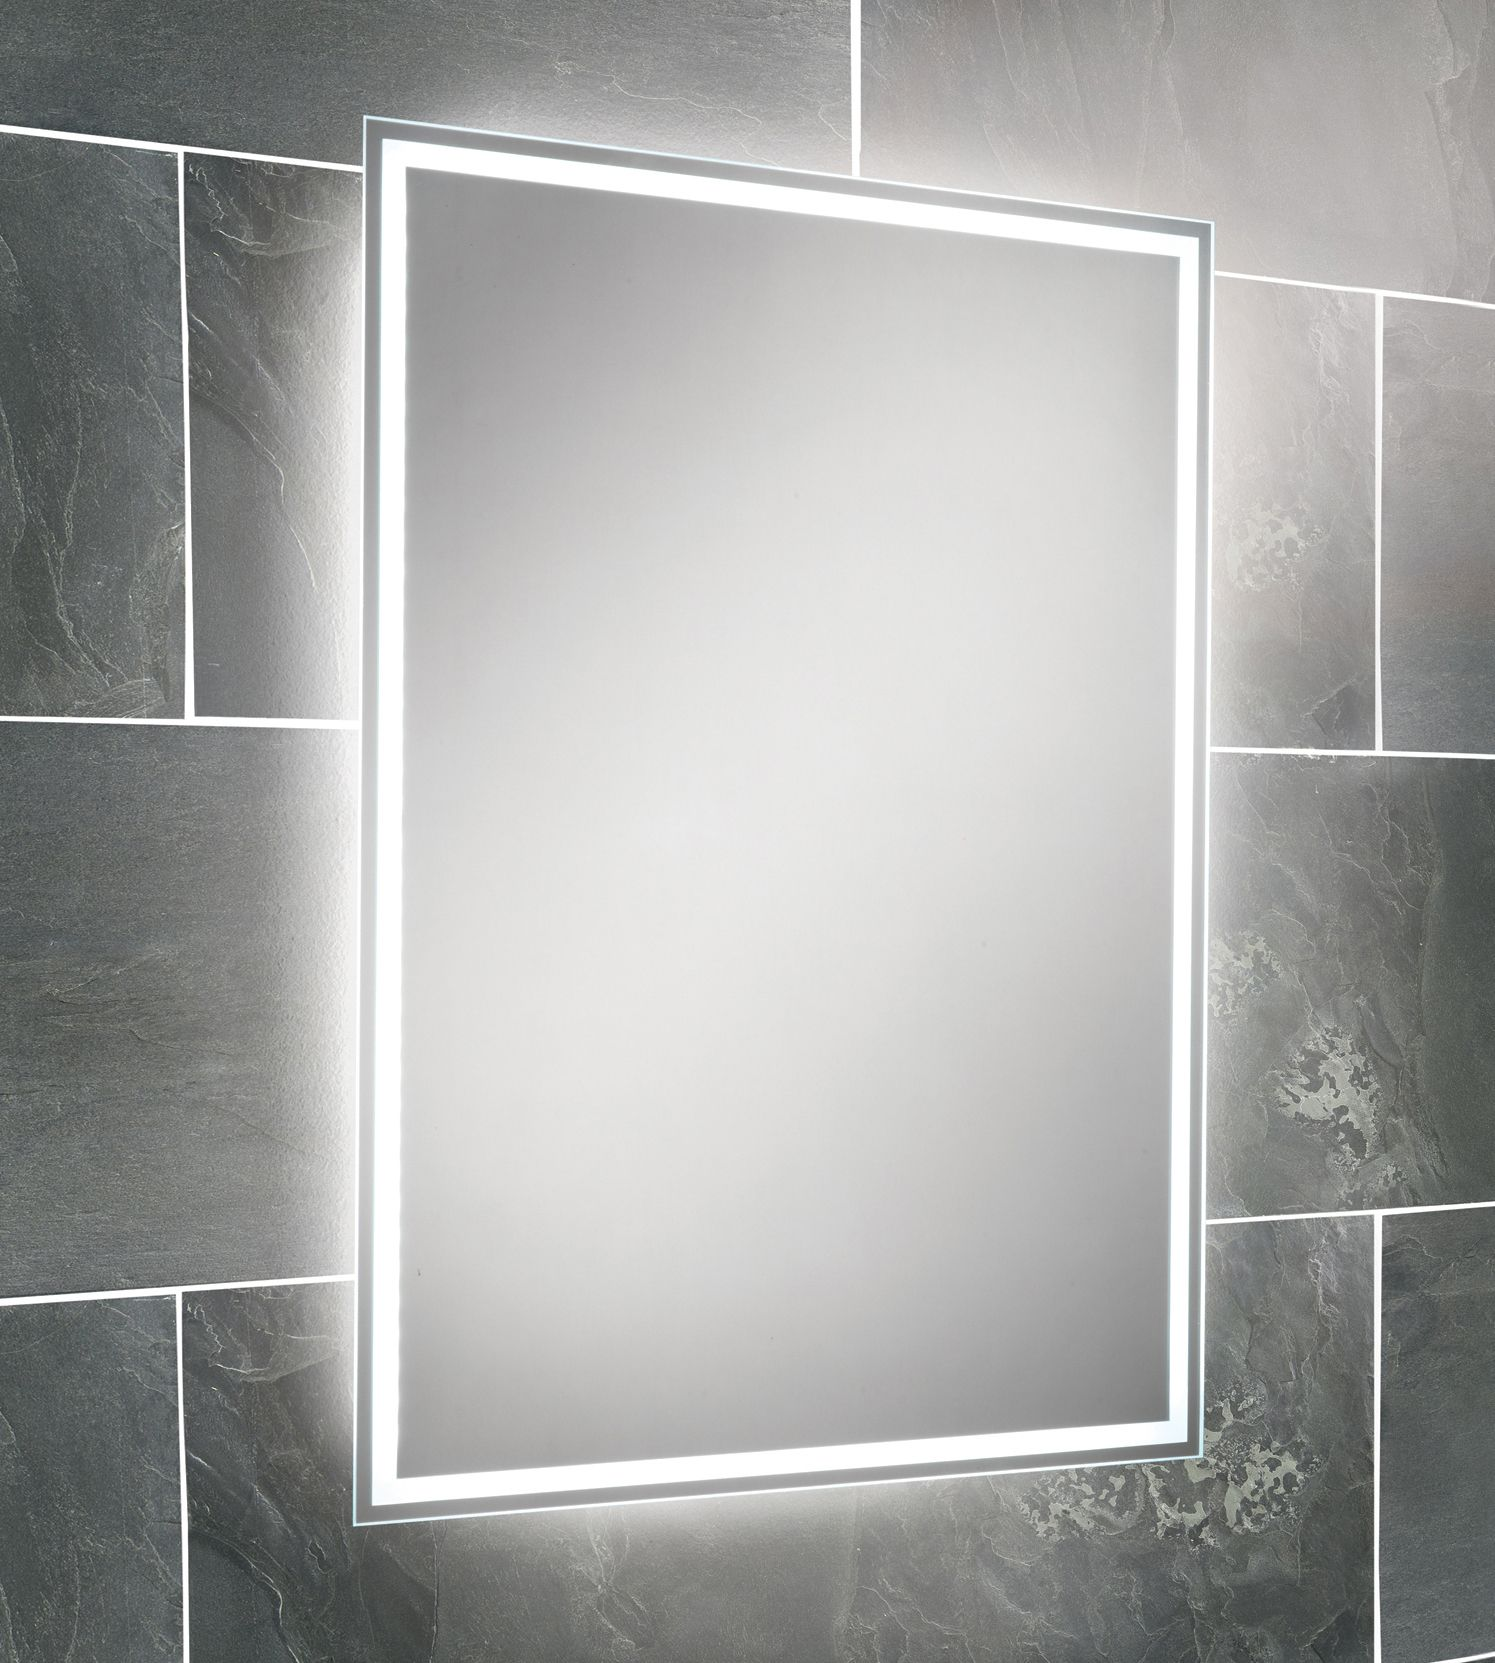 HIB Ella Steam Free LED Back-Lit Bathroom Mirror 700 x 500mm | House ...